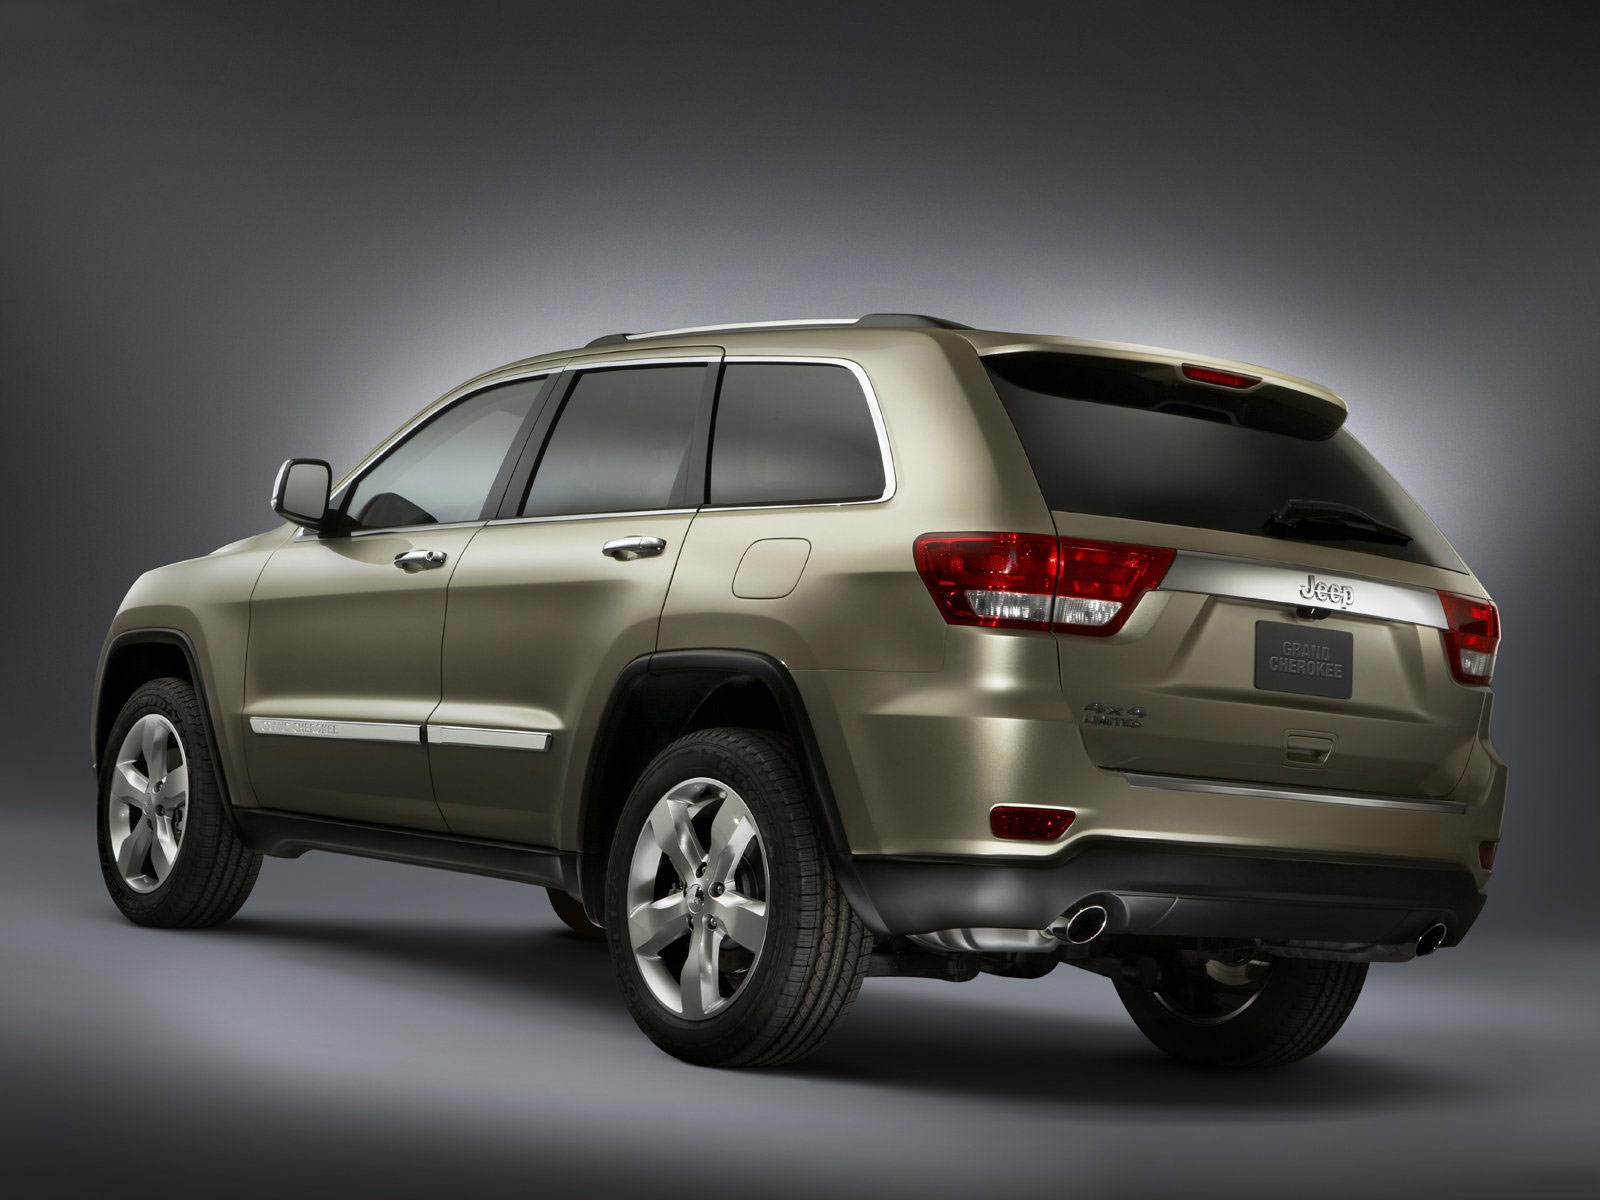 Whining sound jeep grand cherokee